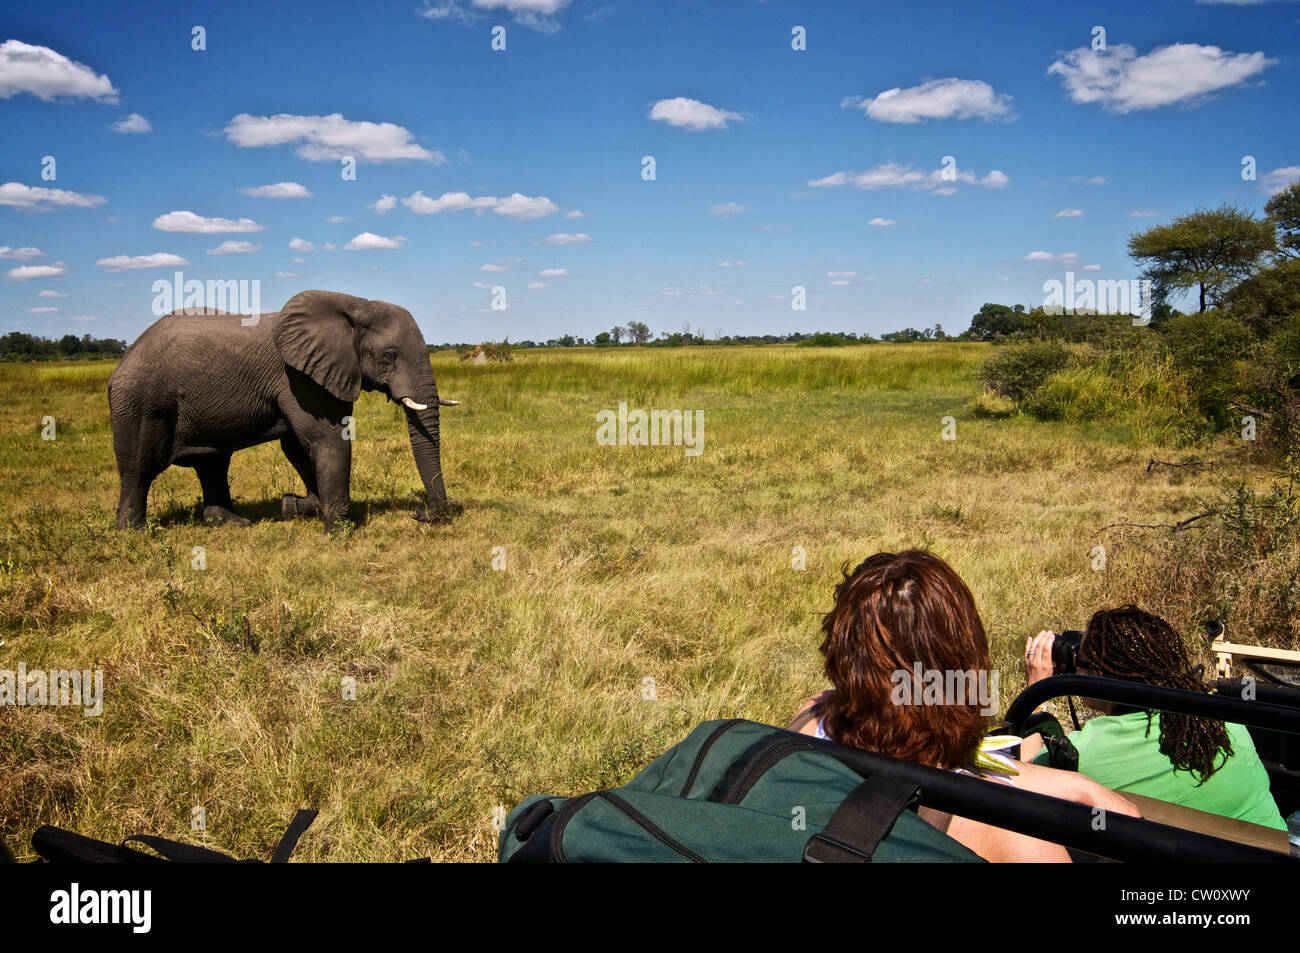 Tourists watching elephant on safari trip. Botswana, Africa. Stock Photo